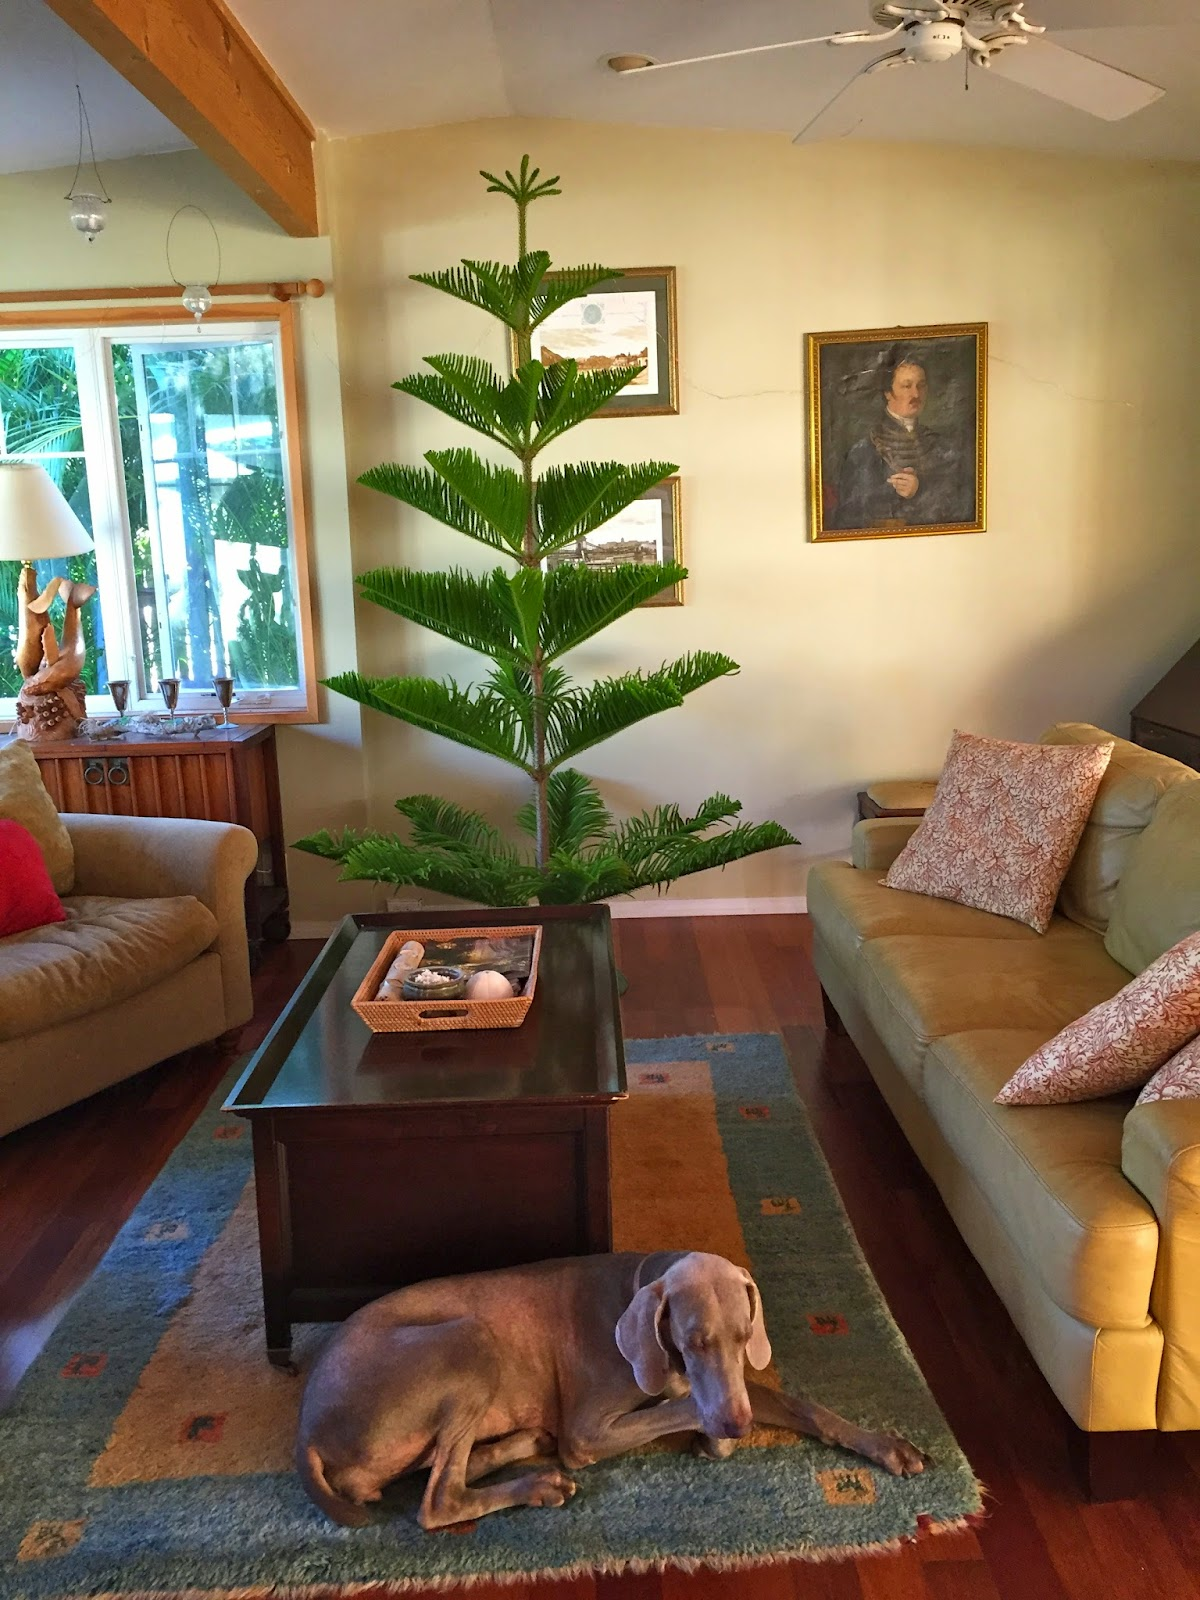 Small Things Bright and Beautiful: Christmas 2014 - Norfolk Pine Tree